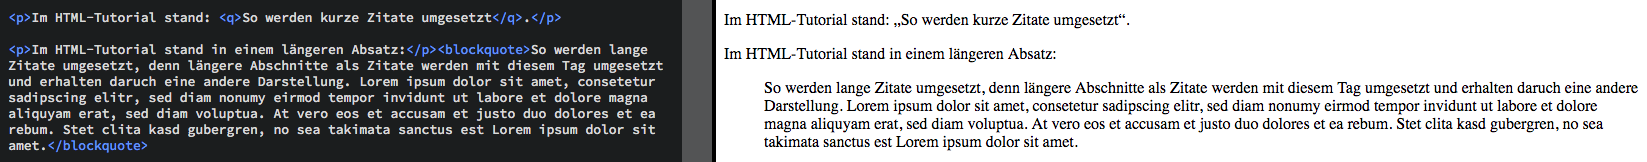 HTML-Tutorial - Zitate